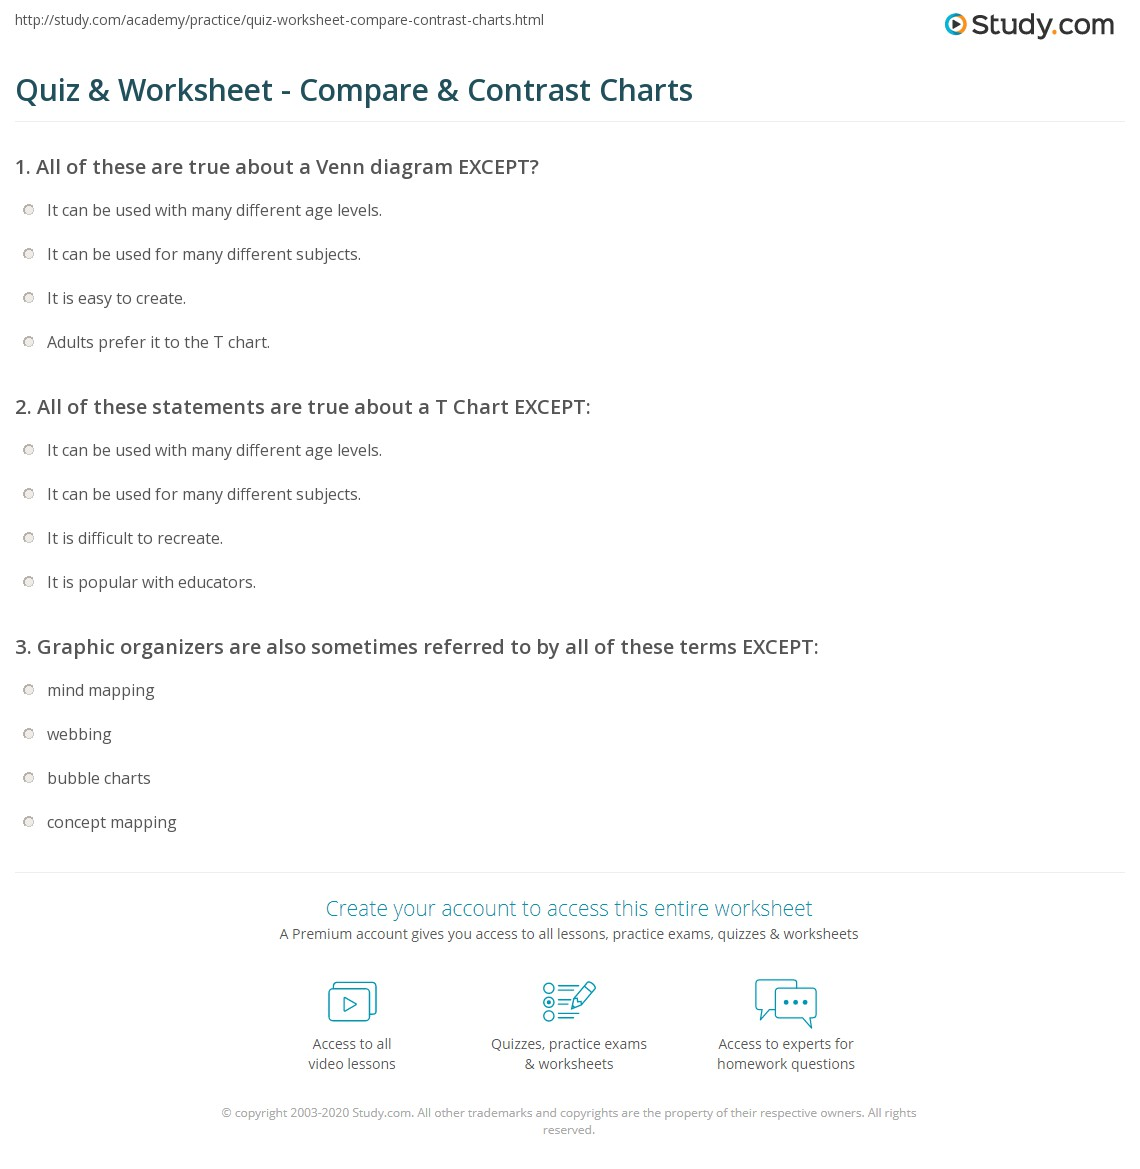 Quiz worksheet compare contrast charts study all of these statements are true about a t chart except ccuart Images